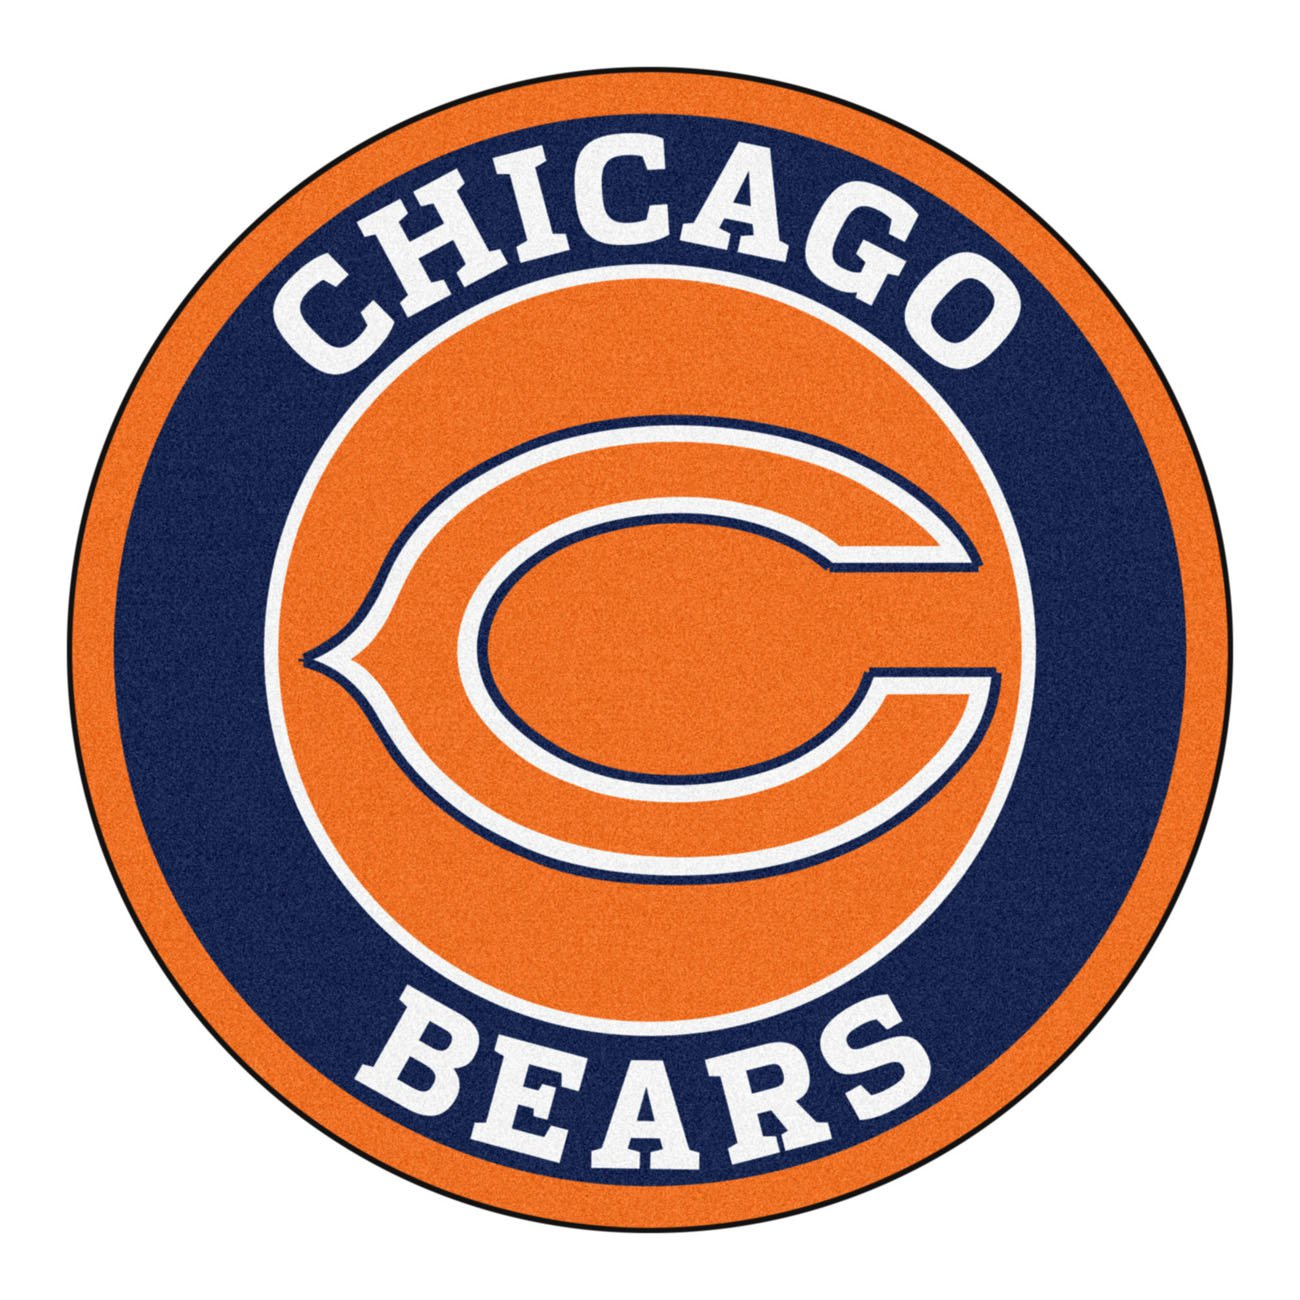 Chicago Bears Logo, Chicago Bears Symbol Meaning, History ...